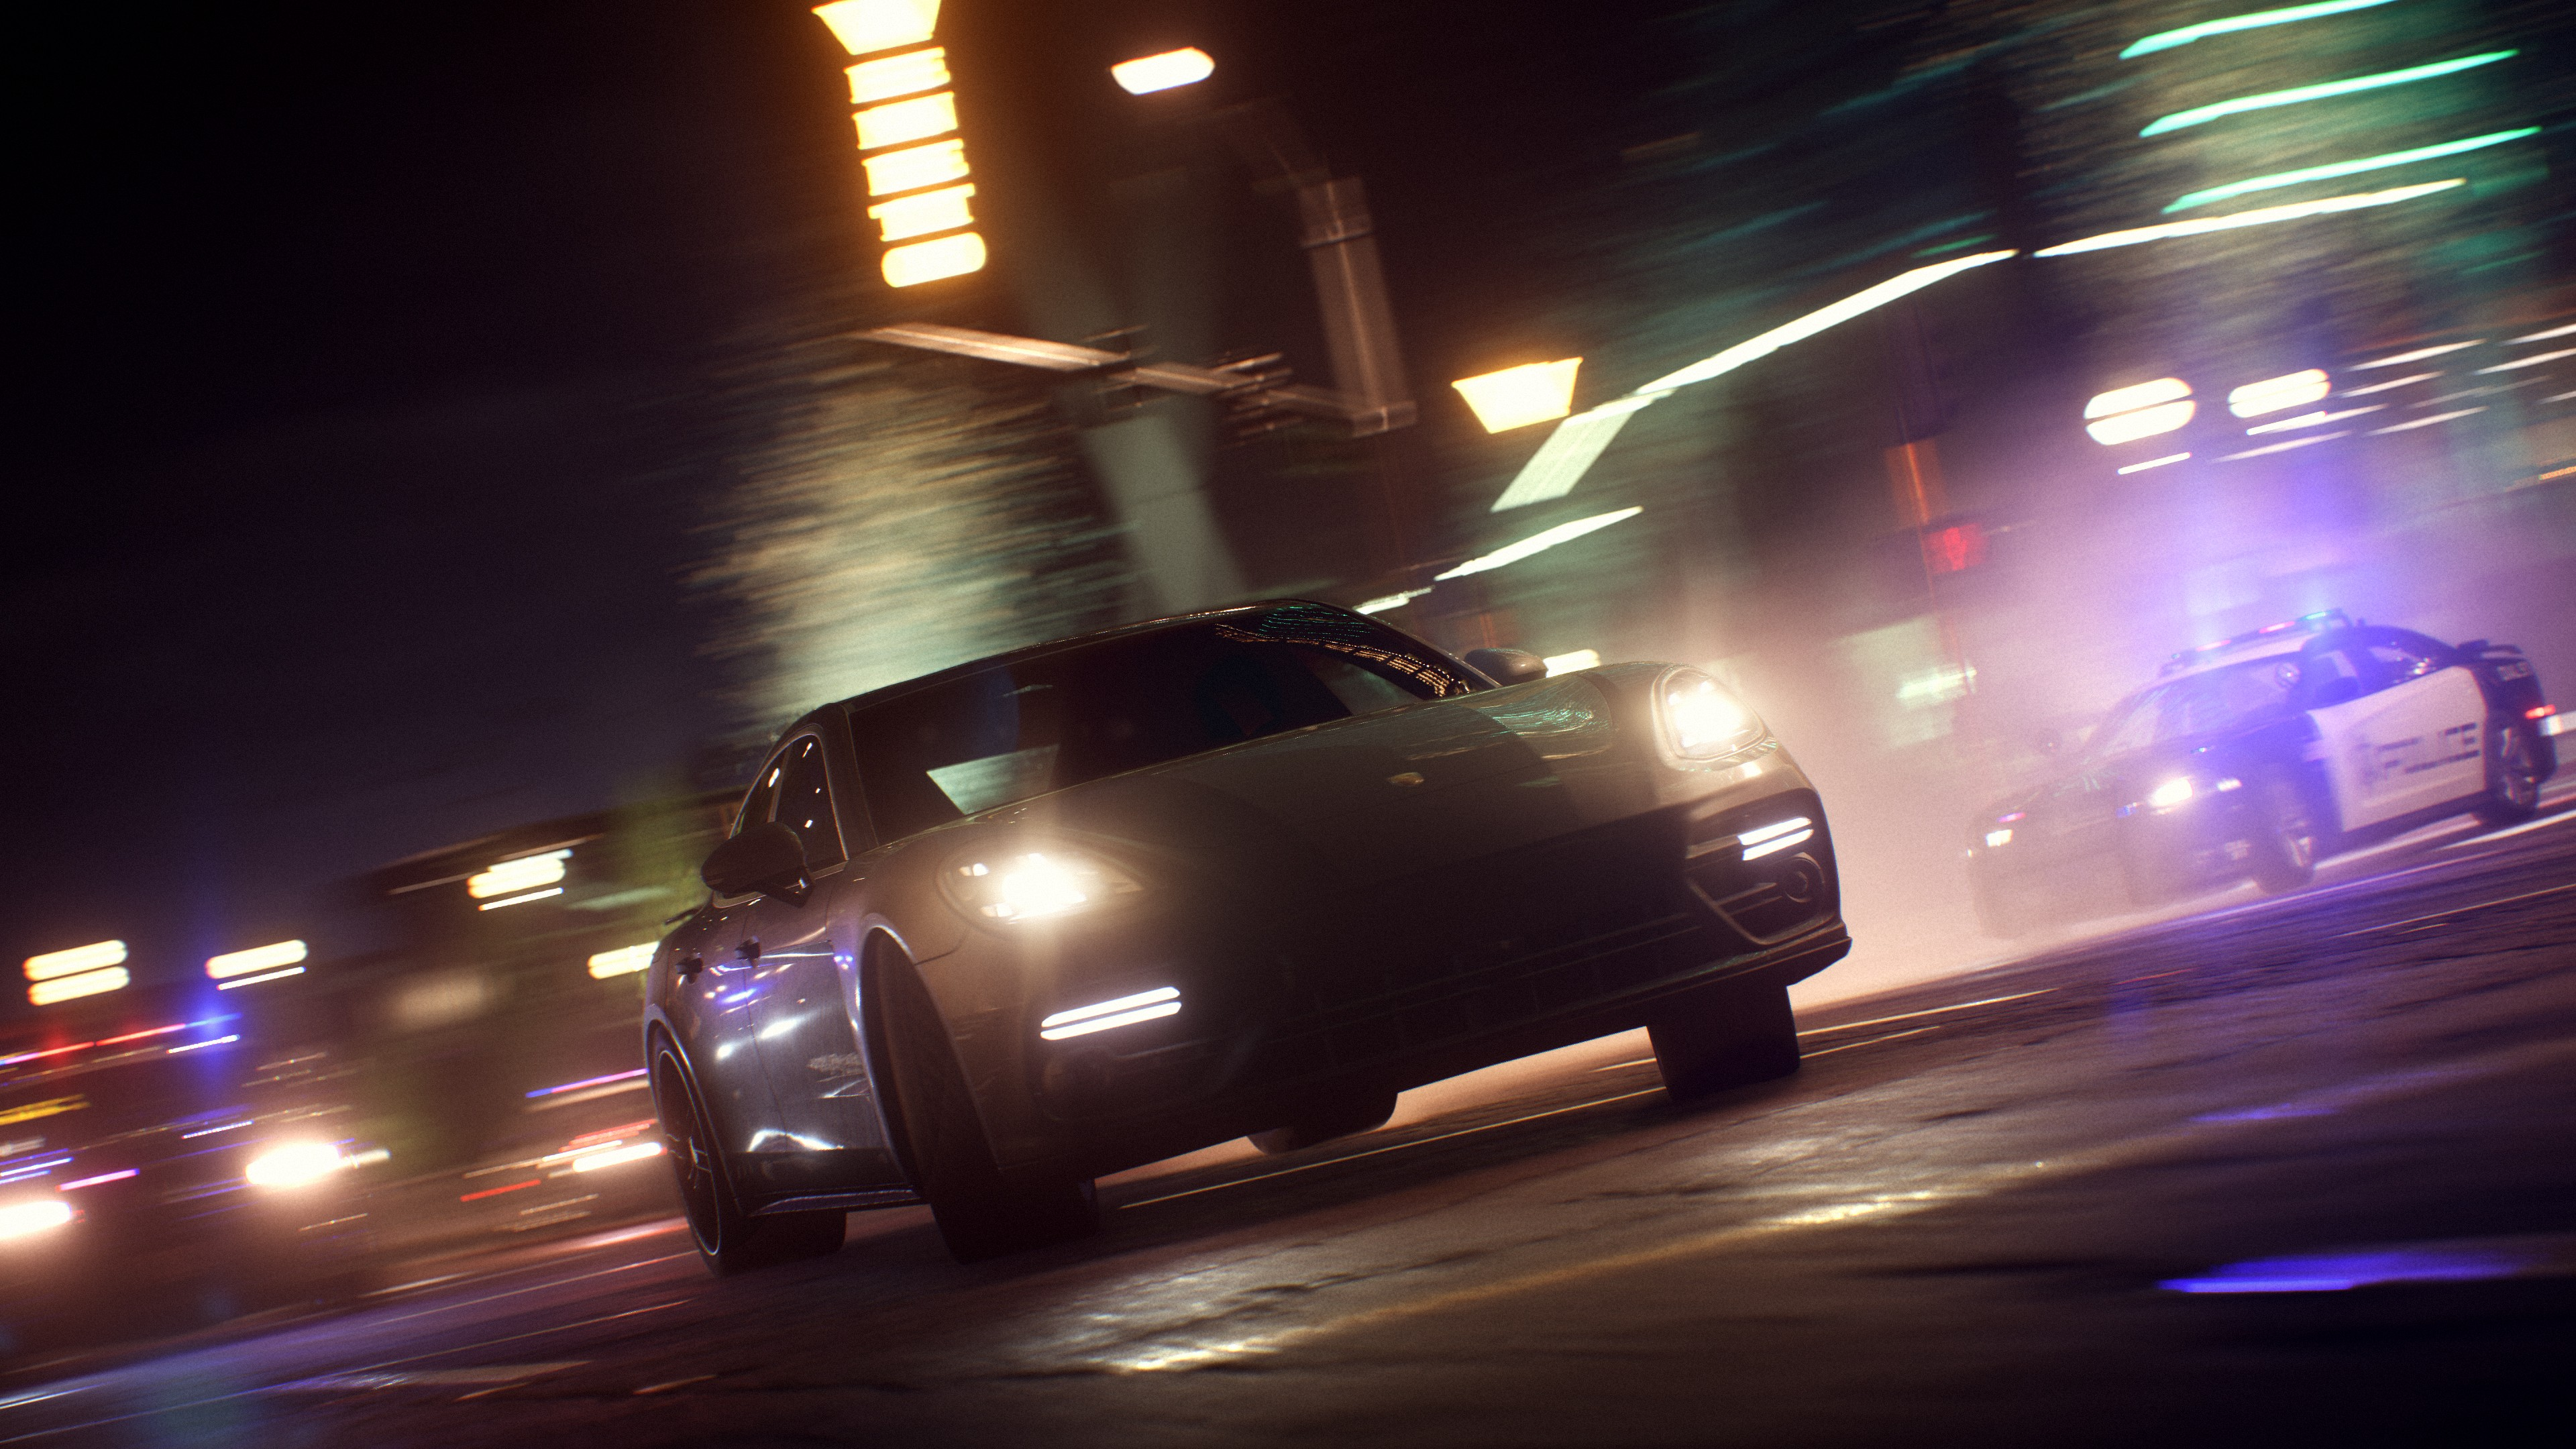 Need for Speed Payback 4 - دانلود بازی نید فور اسپید پلی بک Need for Speed Payback